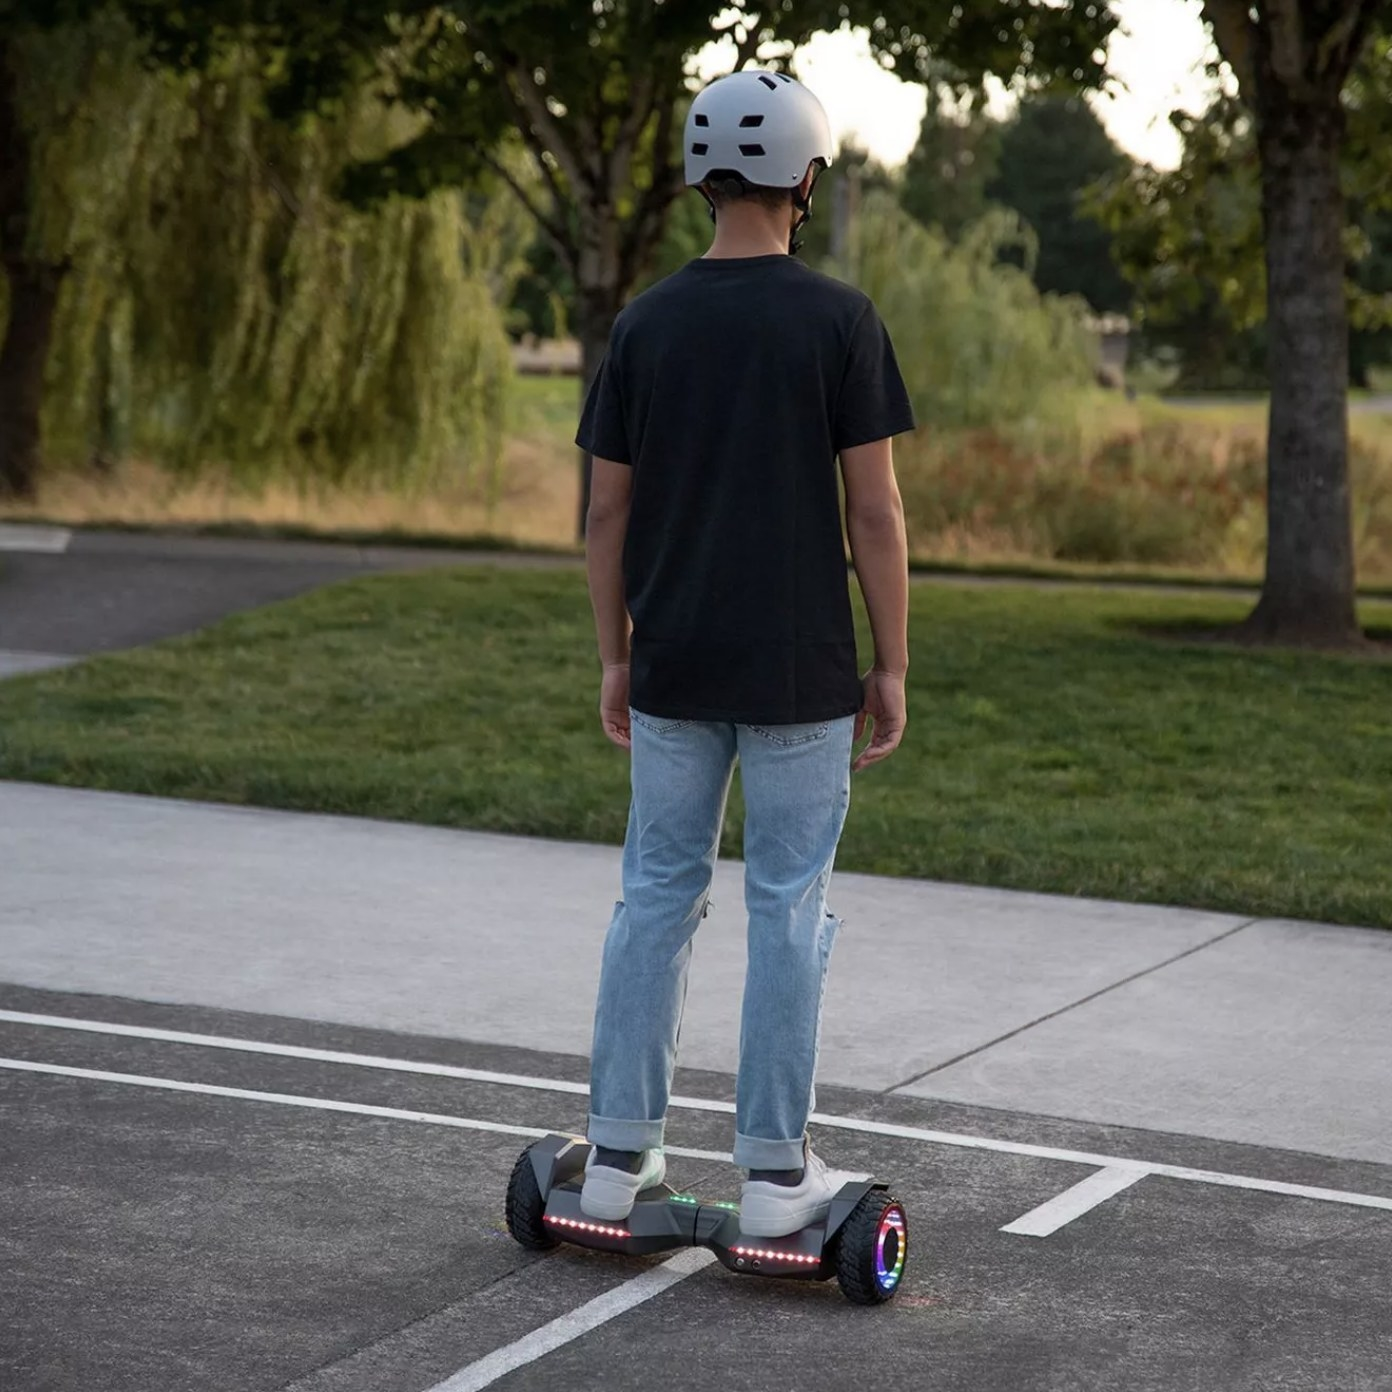 Model is standing on a hoverboard while wearing a helmet